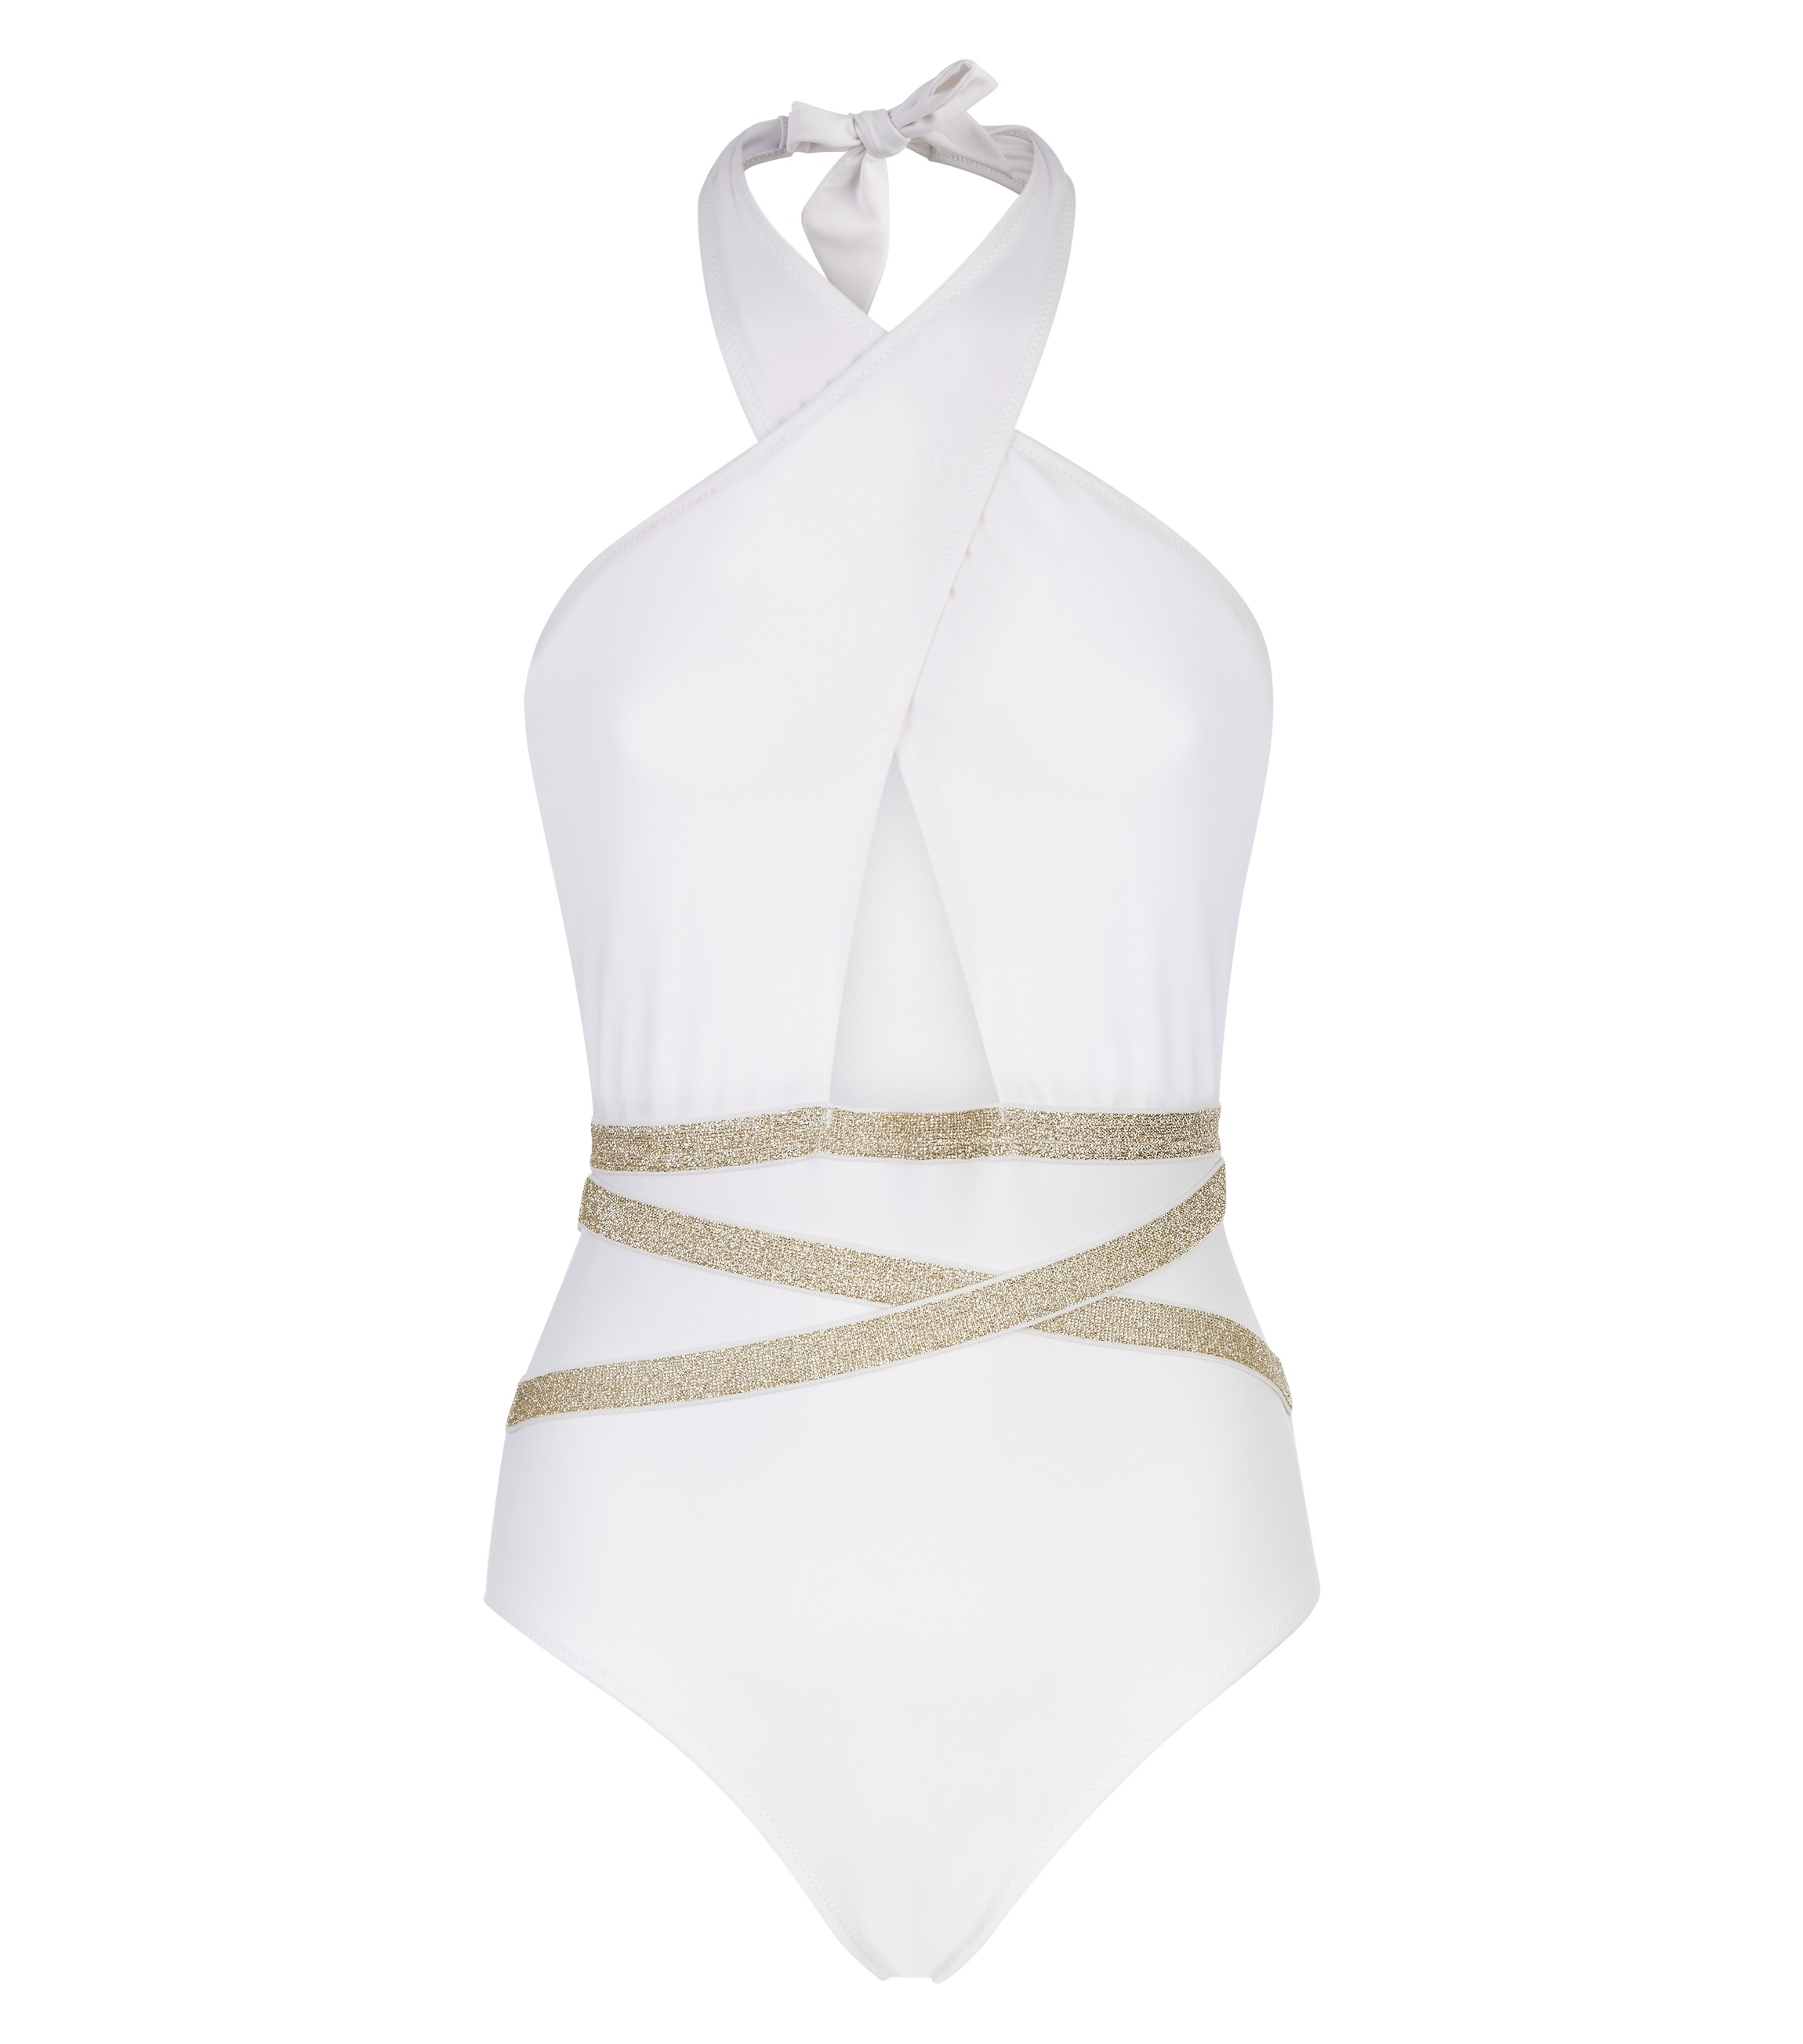 New Look White Glitter Belted Plunge Neck Swimsuit